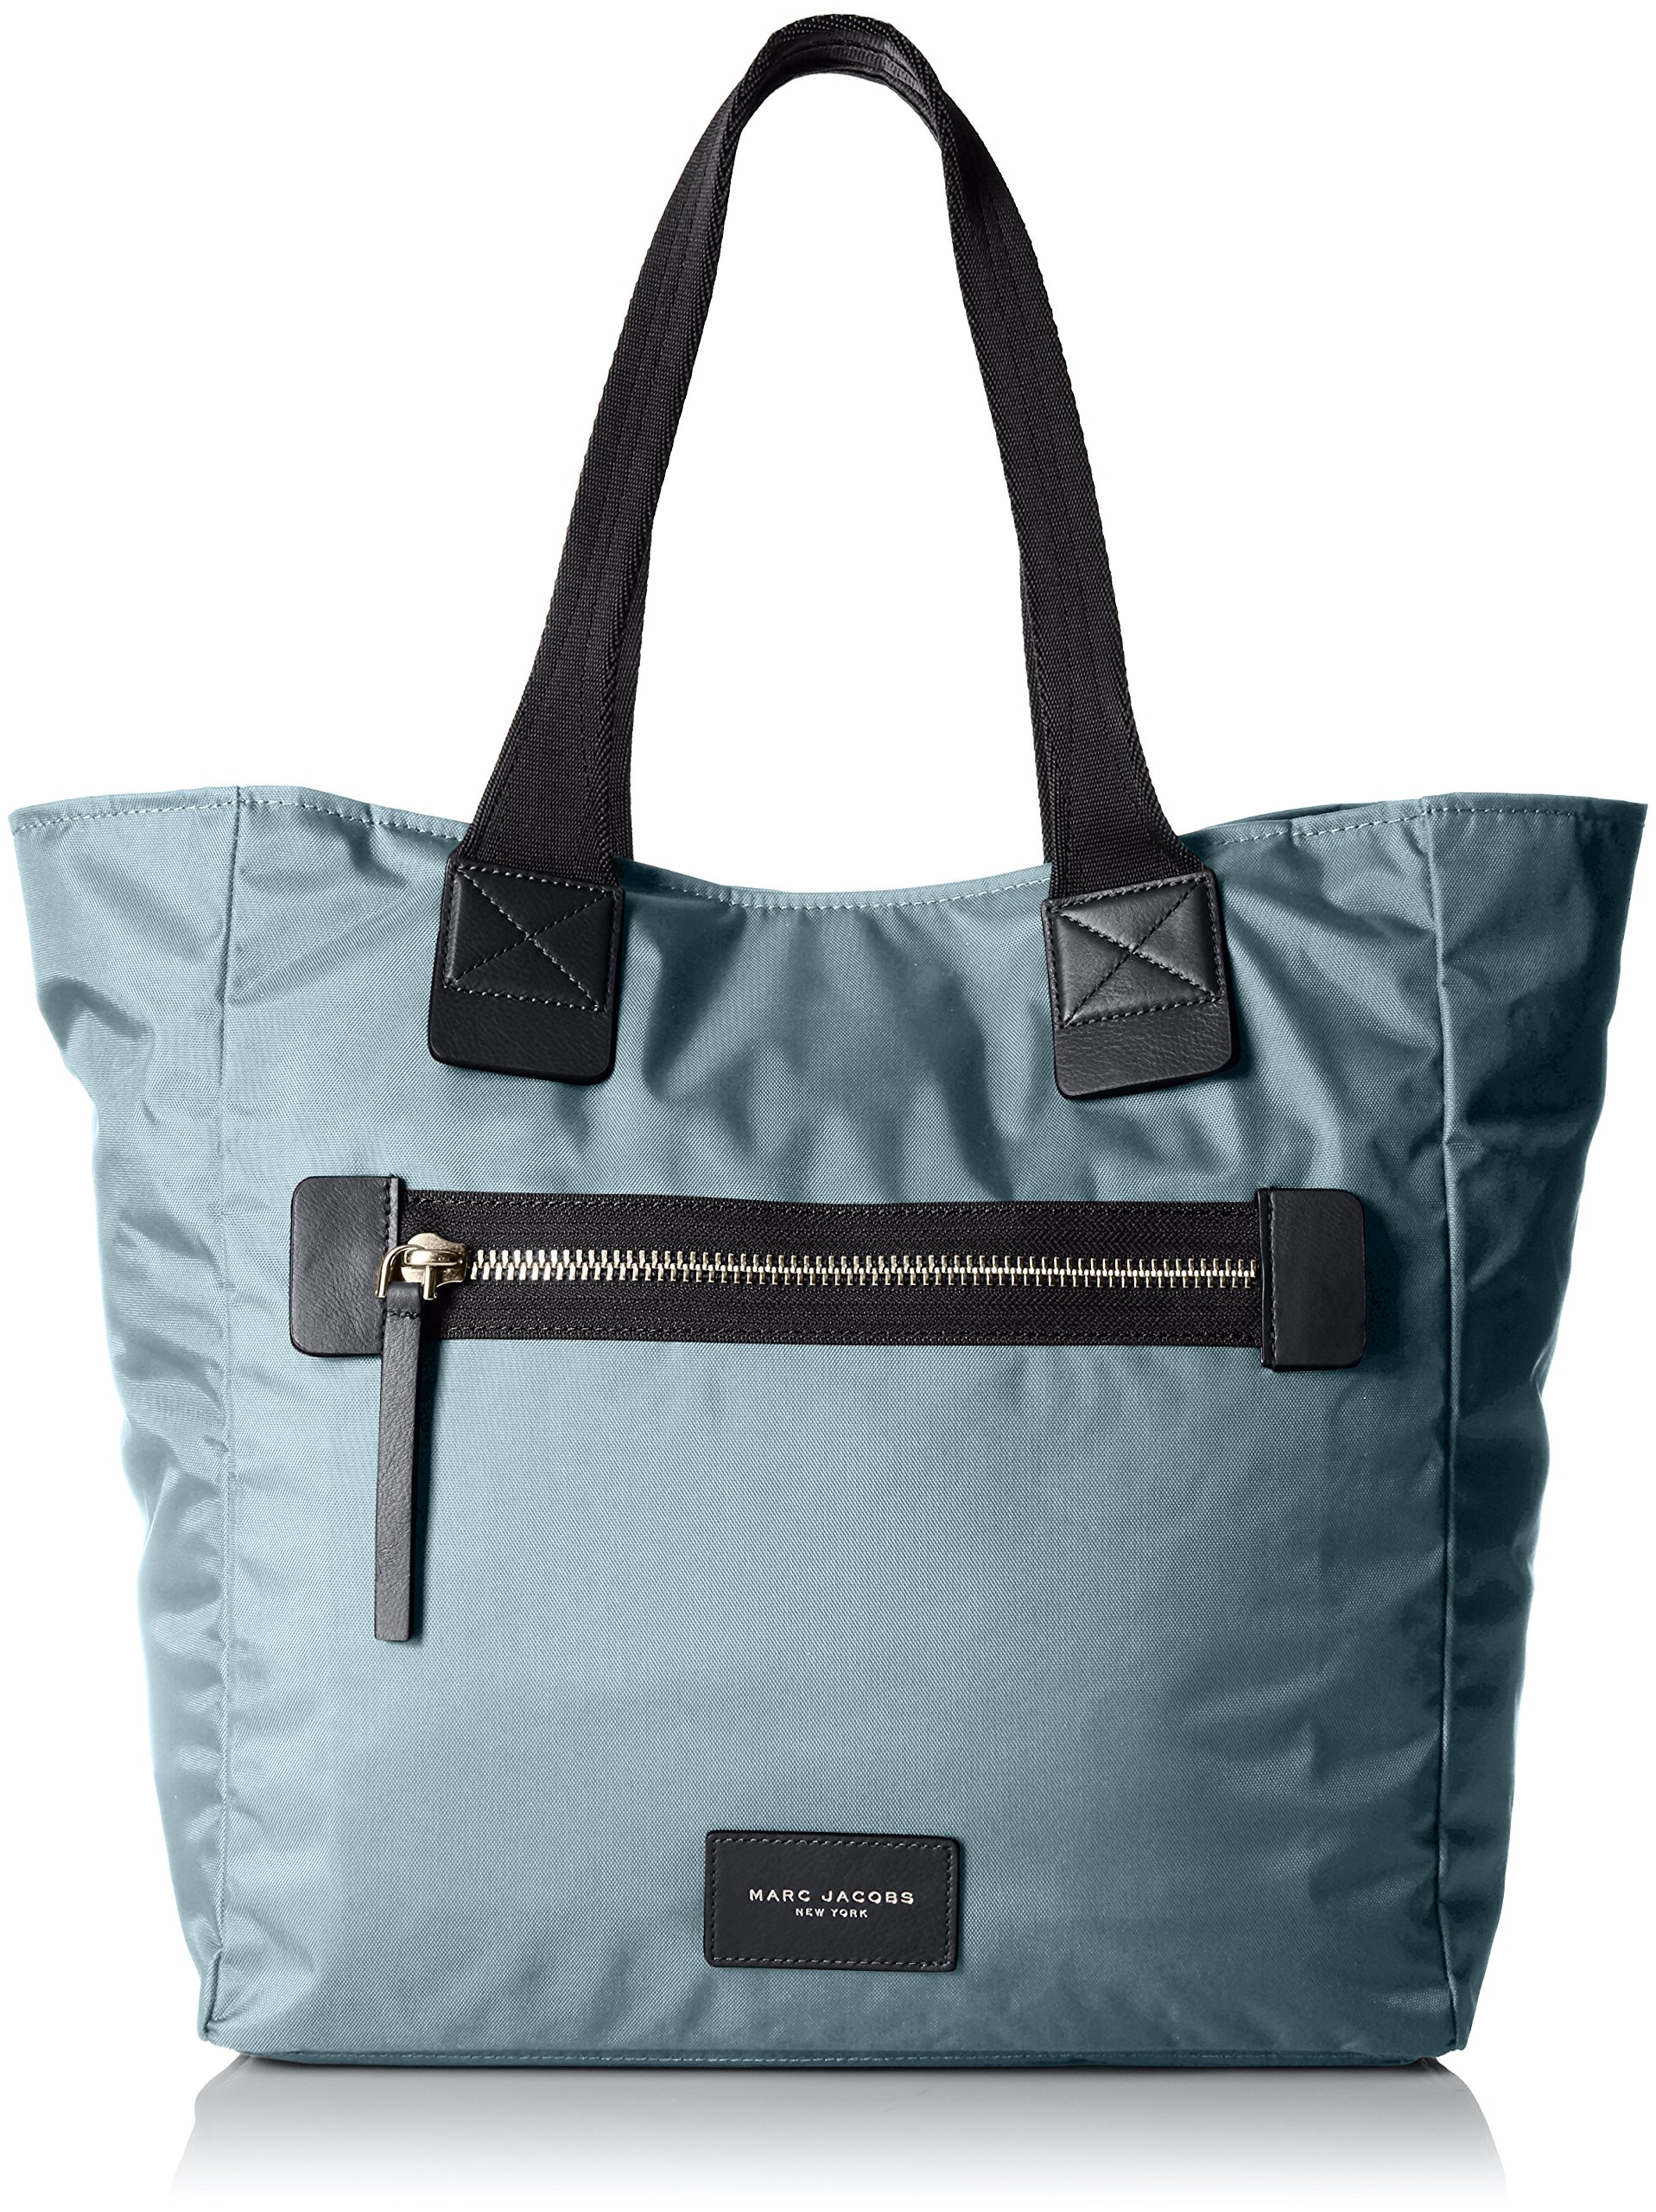 Marc Jacobs Women's Nylon Biker North/South Tote, Dolphin Blue by Marc Jacobs